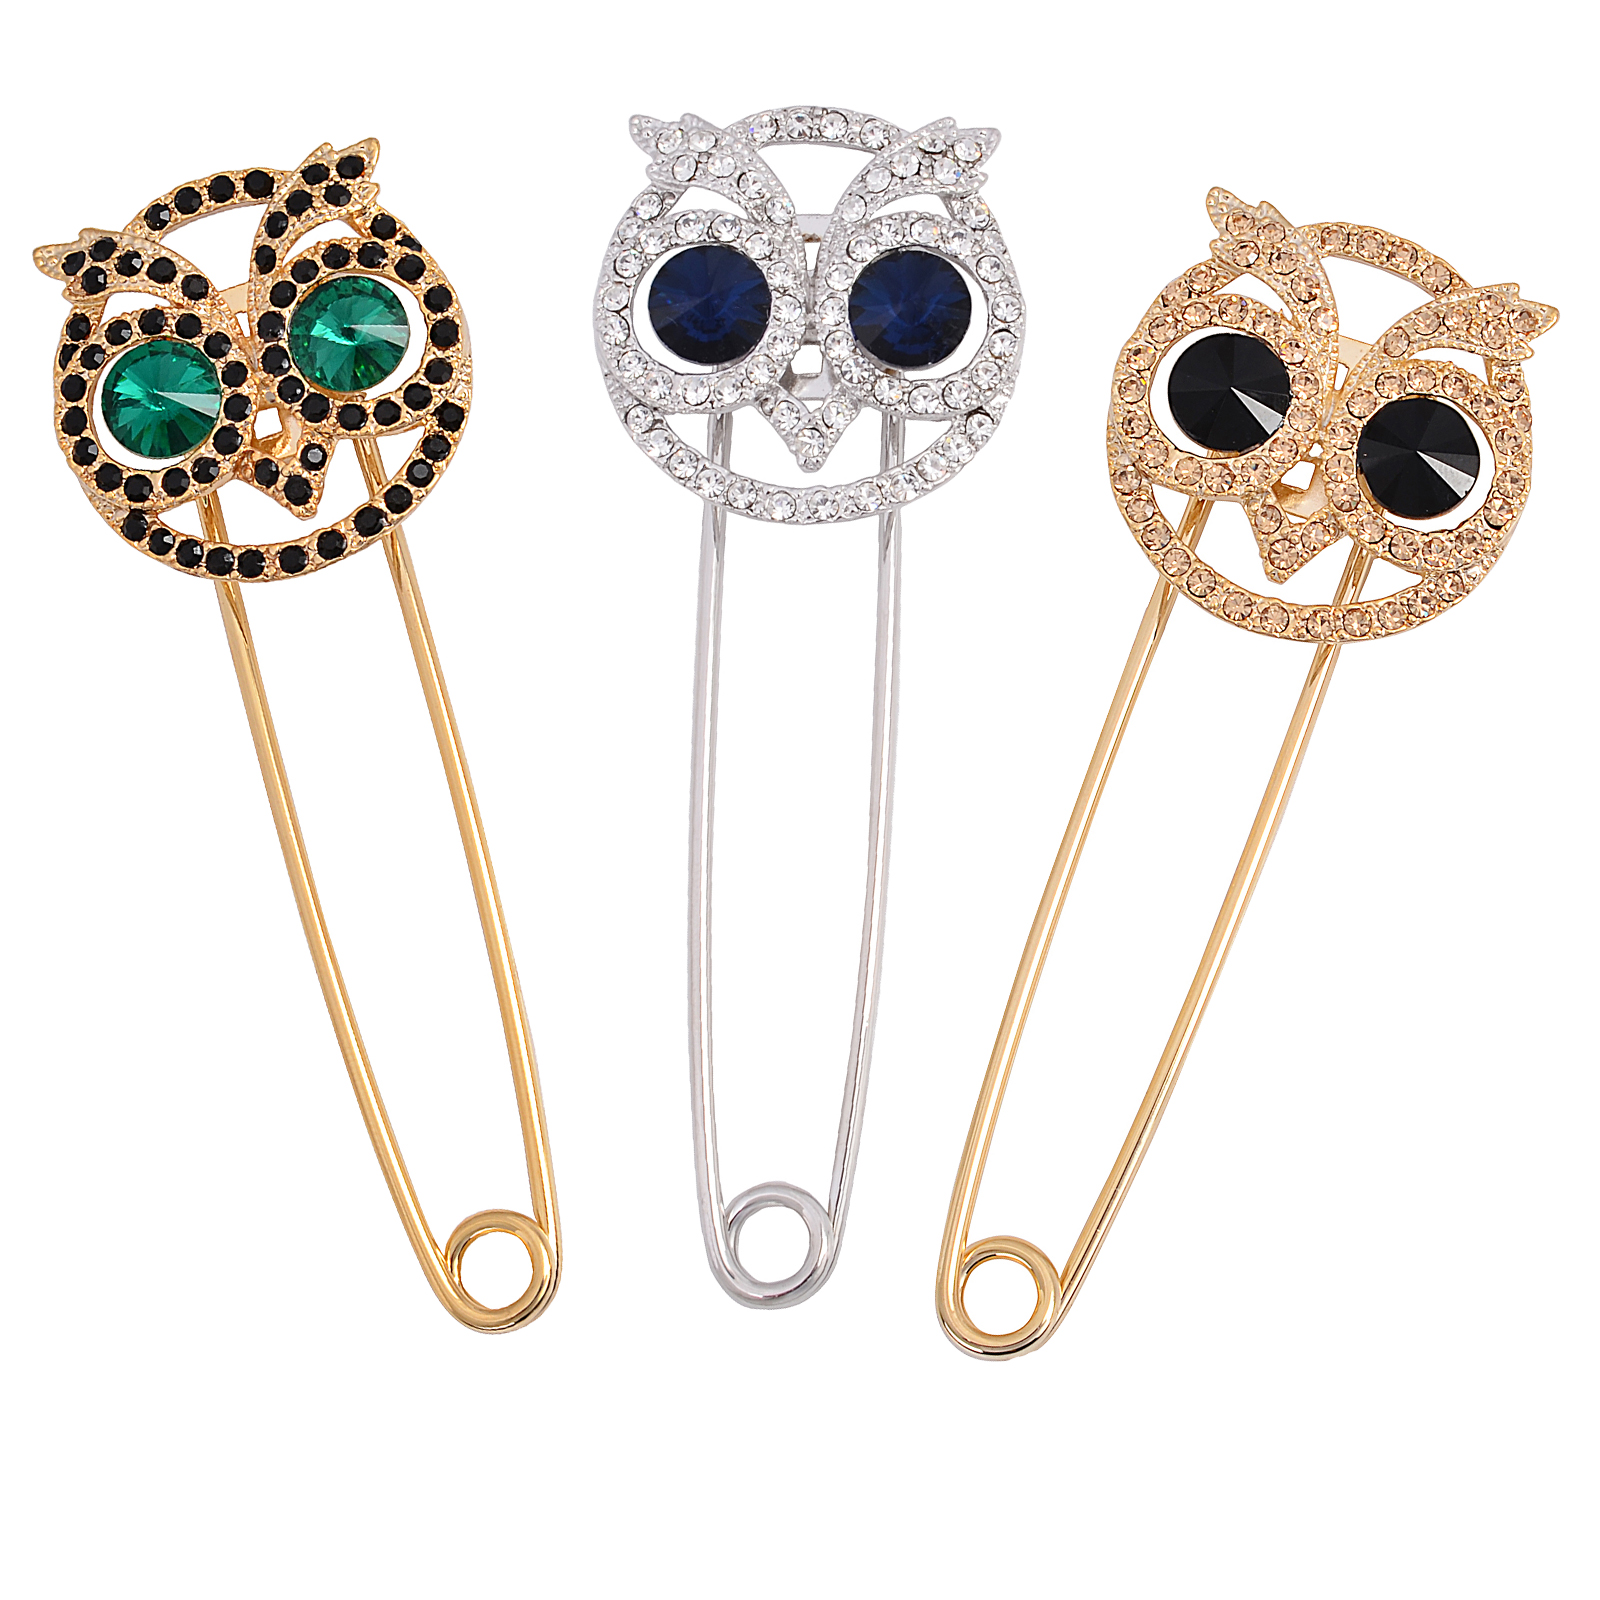 ICEYY 3 Vintage CZ Rhinestone Crystal Owl Extra Large Stainless Steel Safety Pins Brooches Tie Cardigan Sweater Scarf Brooch